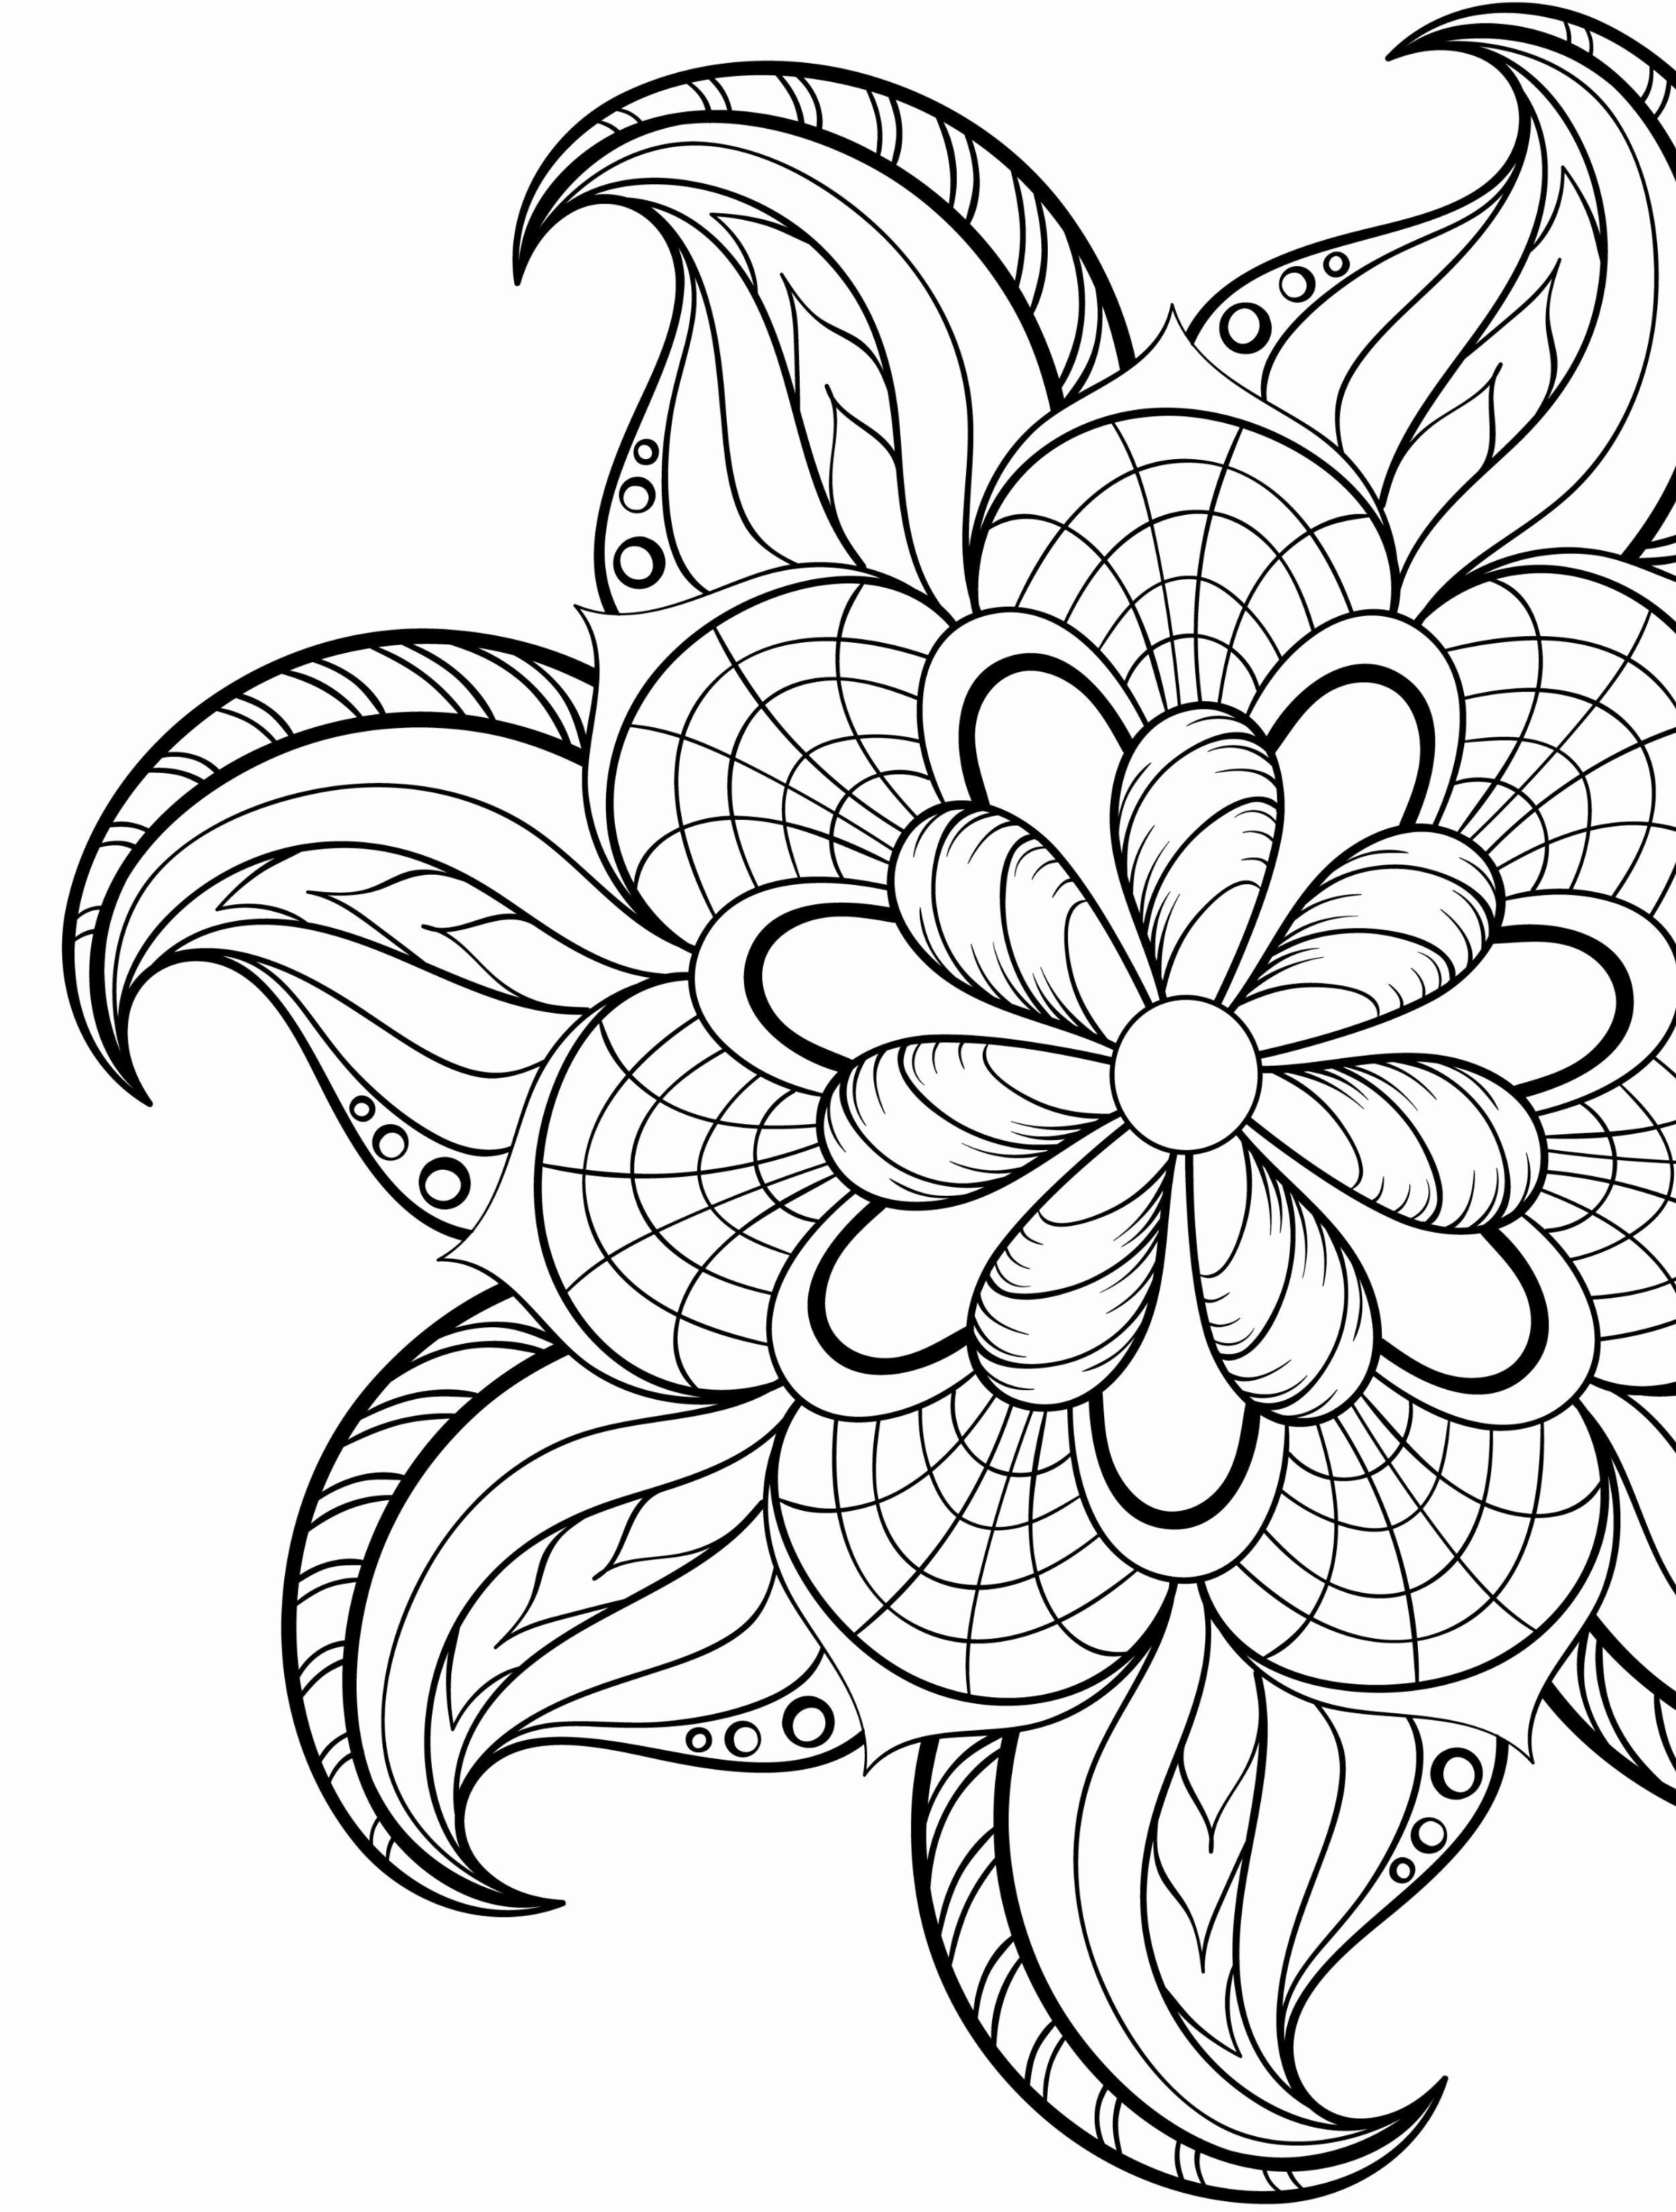 Simple Flower Coloring Book Pdf Elegant 20 Gorgeous Free Printable